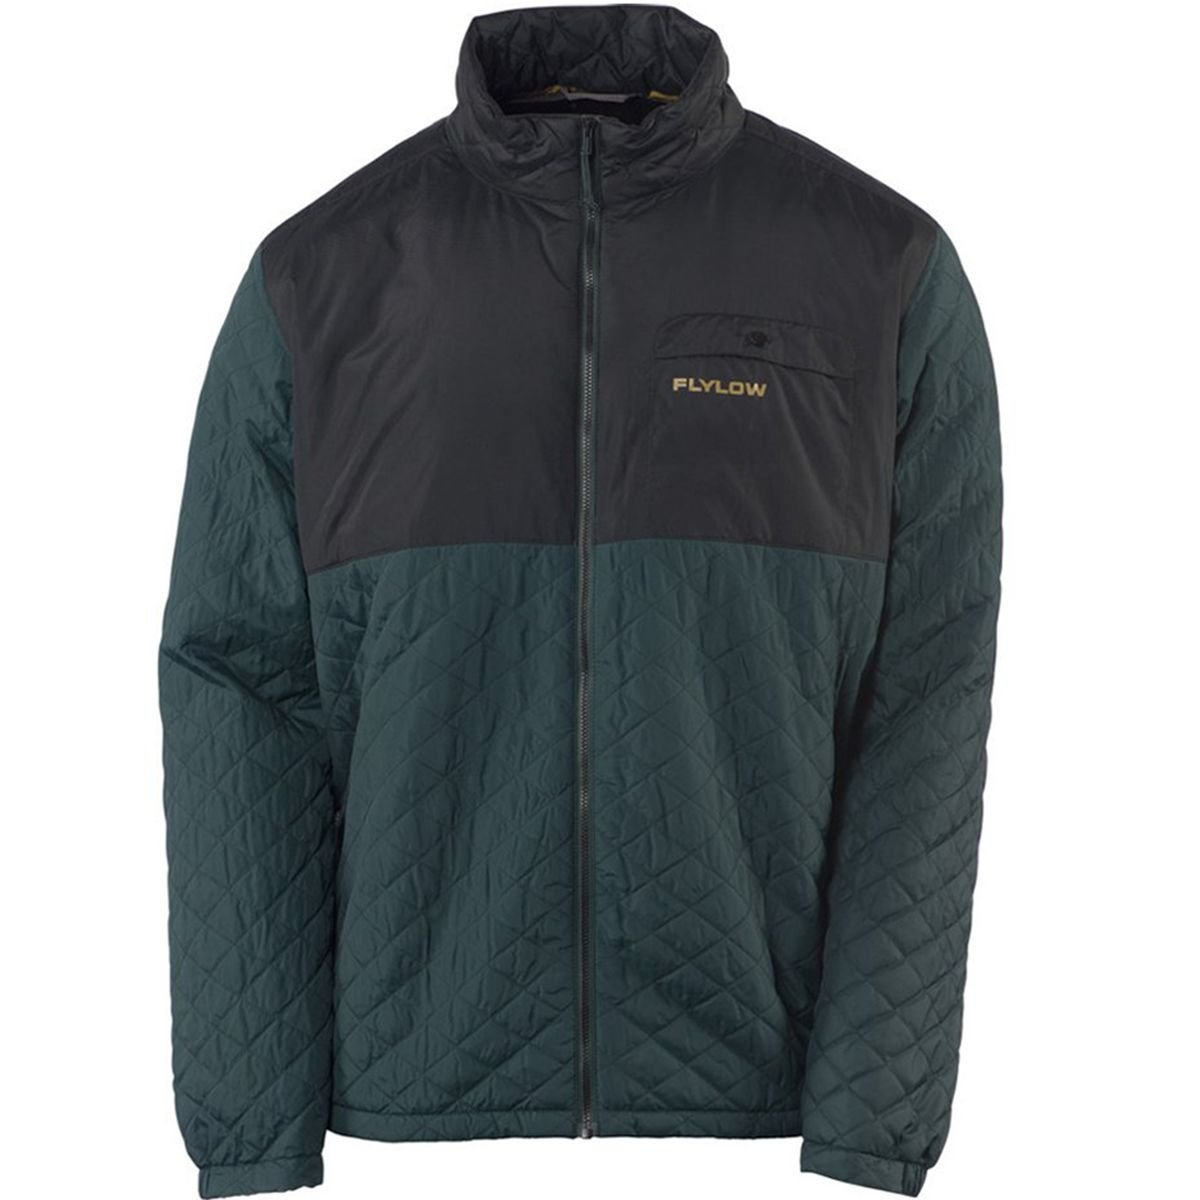 Flylow Gear Dexter Insulated Jacket – Men 's B075LSZ3ZQ 3L|Trawler/Black Trawler/Black 3L